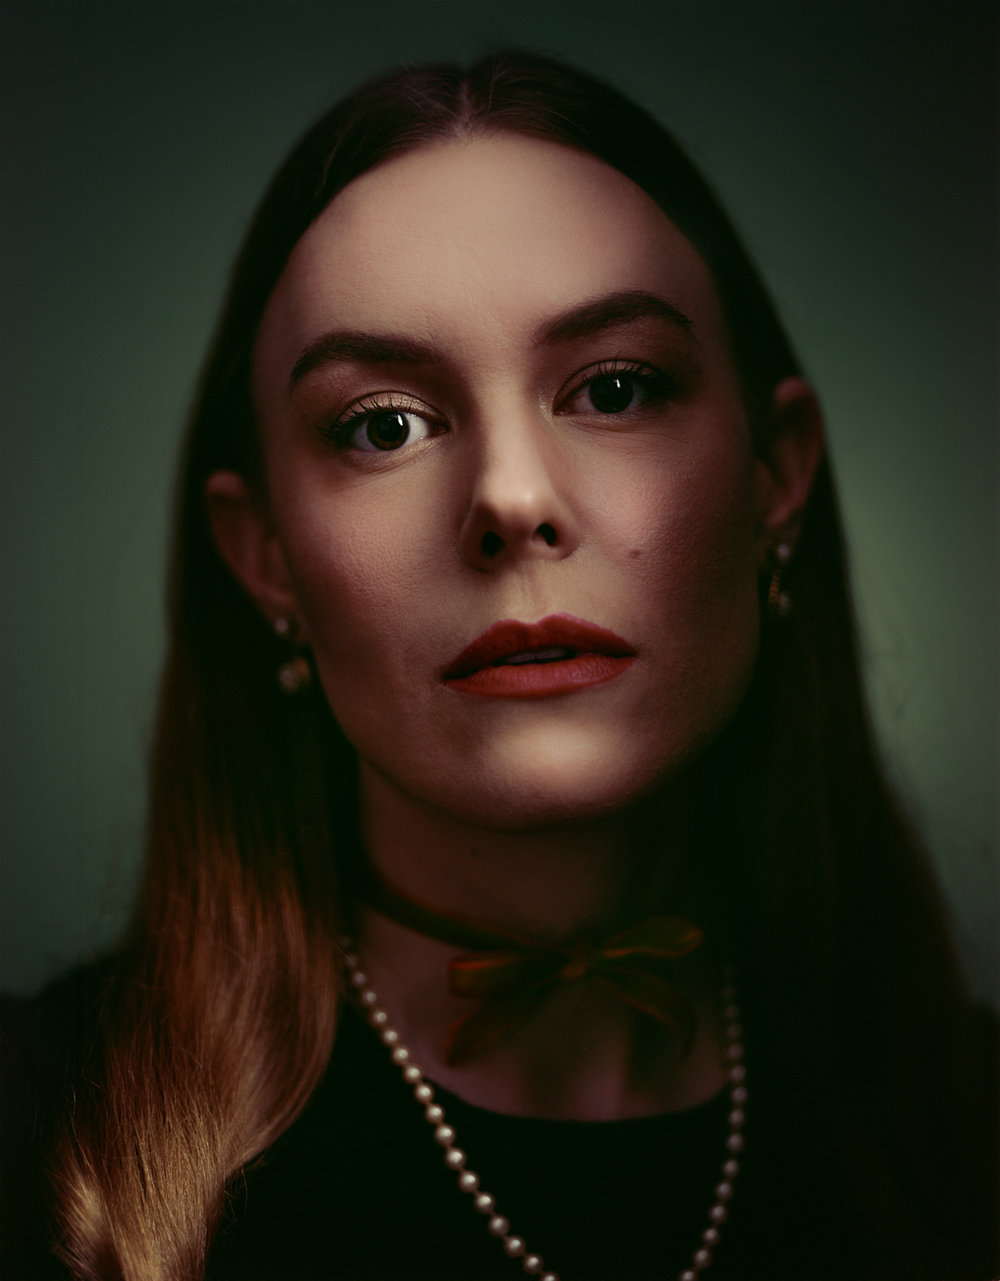 4x5 FILM PORTRAIT BY  ALEX HOXIE  & STYLED BY YOURS TRULY ✶ Winner of the 5th Annual MOPLA Analogue Portrait Project in Los Angeles